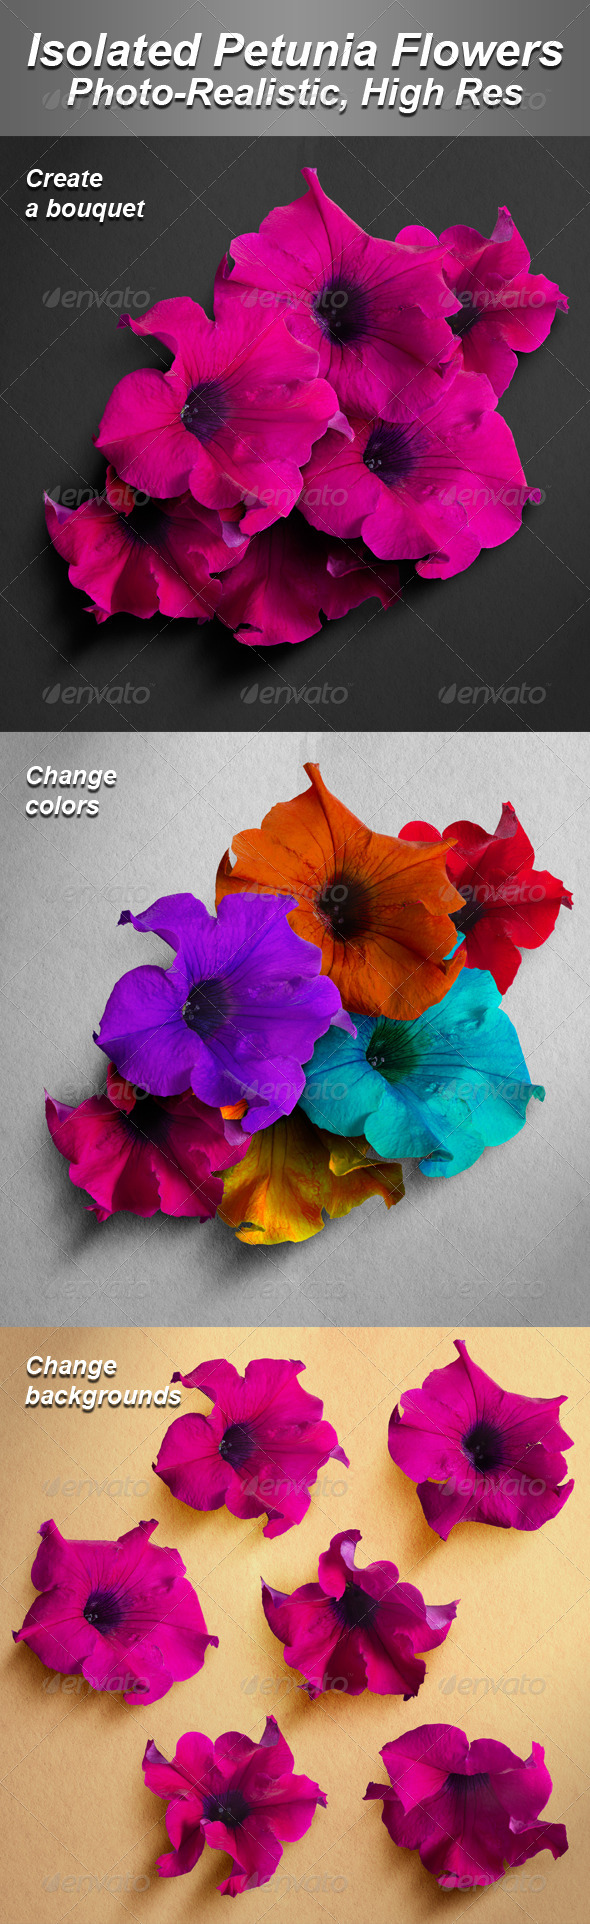 GraphicRiver 6 Isolated Photo-Realistic Petunia Flowers 4771995